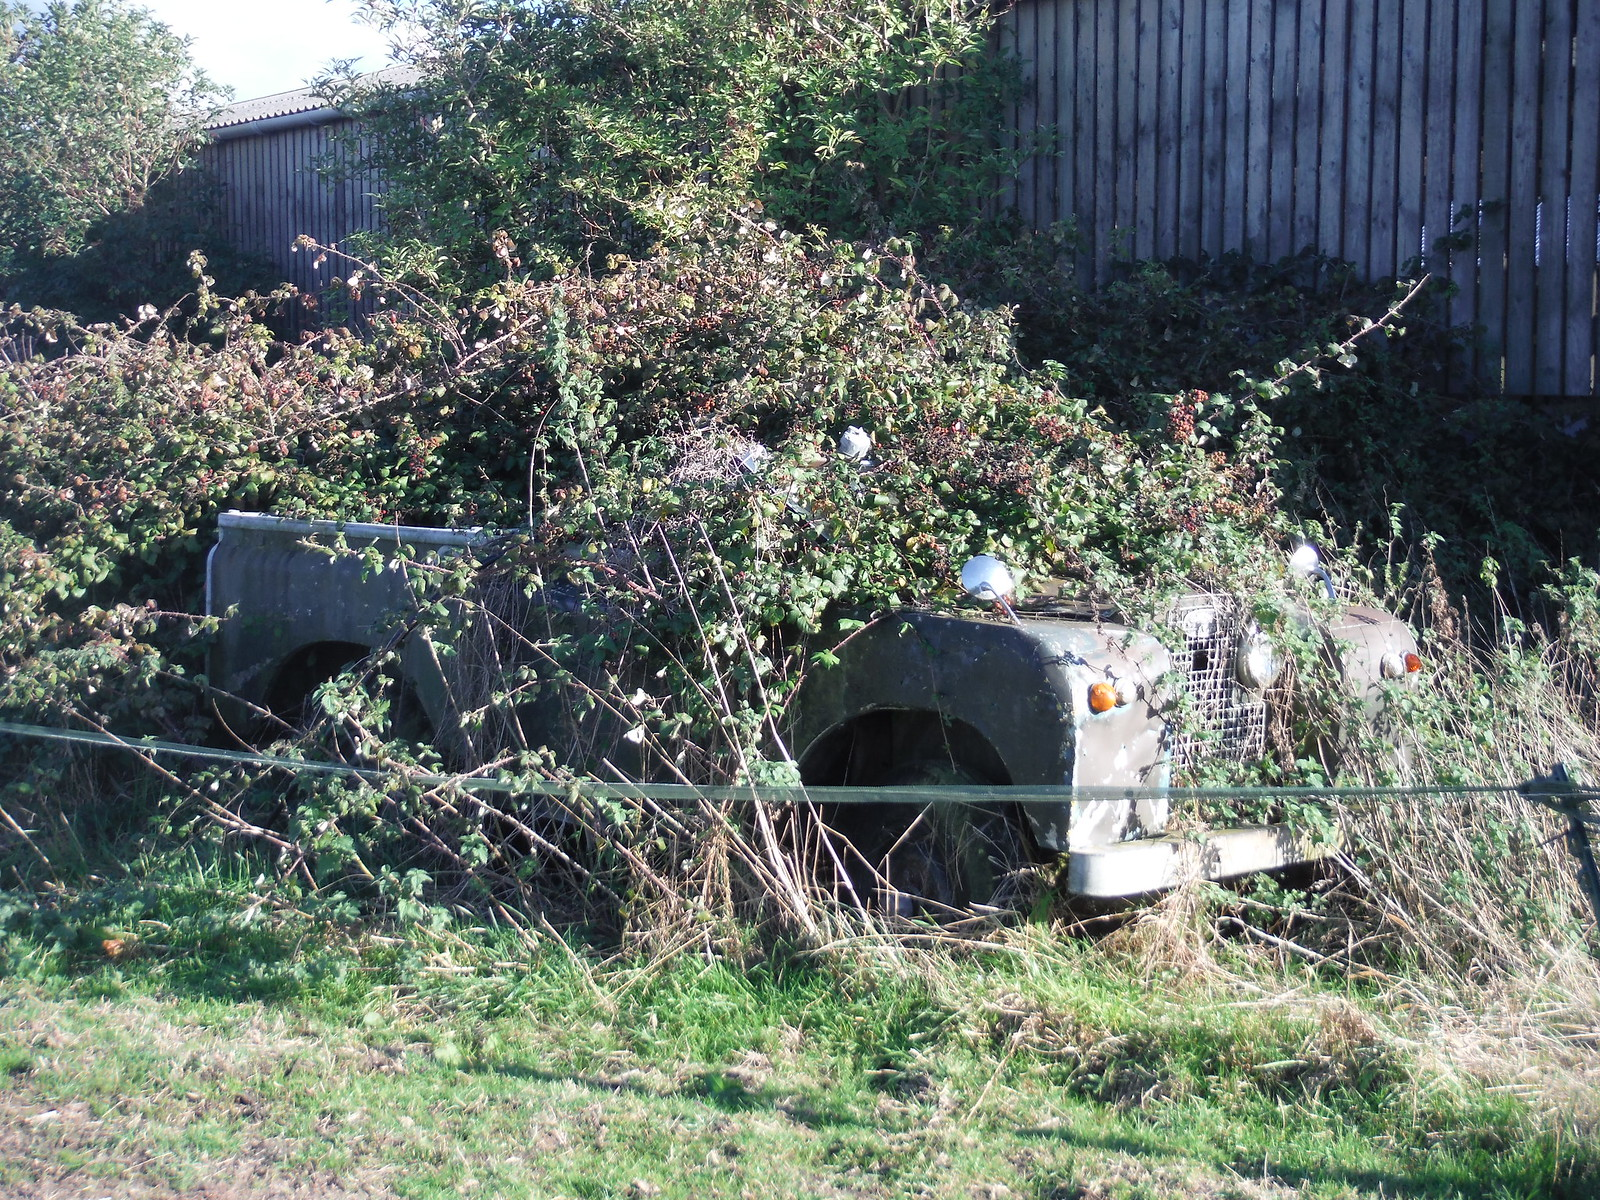 Slightly overgrown Land Rover, Barns Farm, Aston Abbotts SWC Walk 194 Aylesbury Vale Parkway to Aylesbury